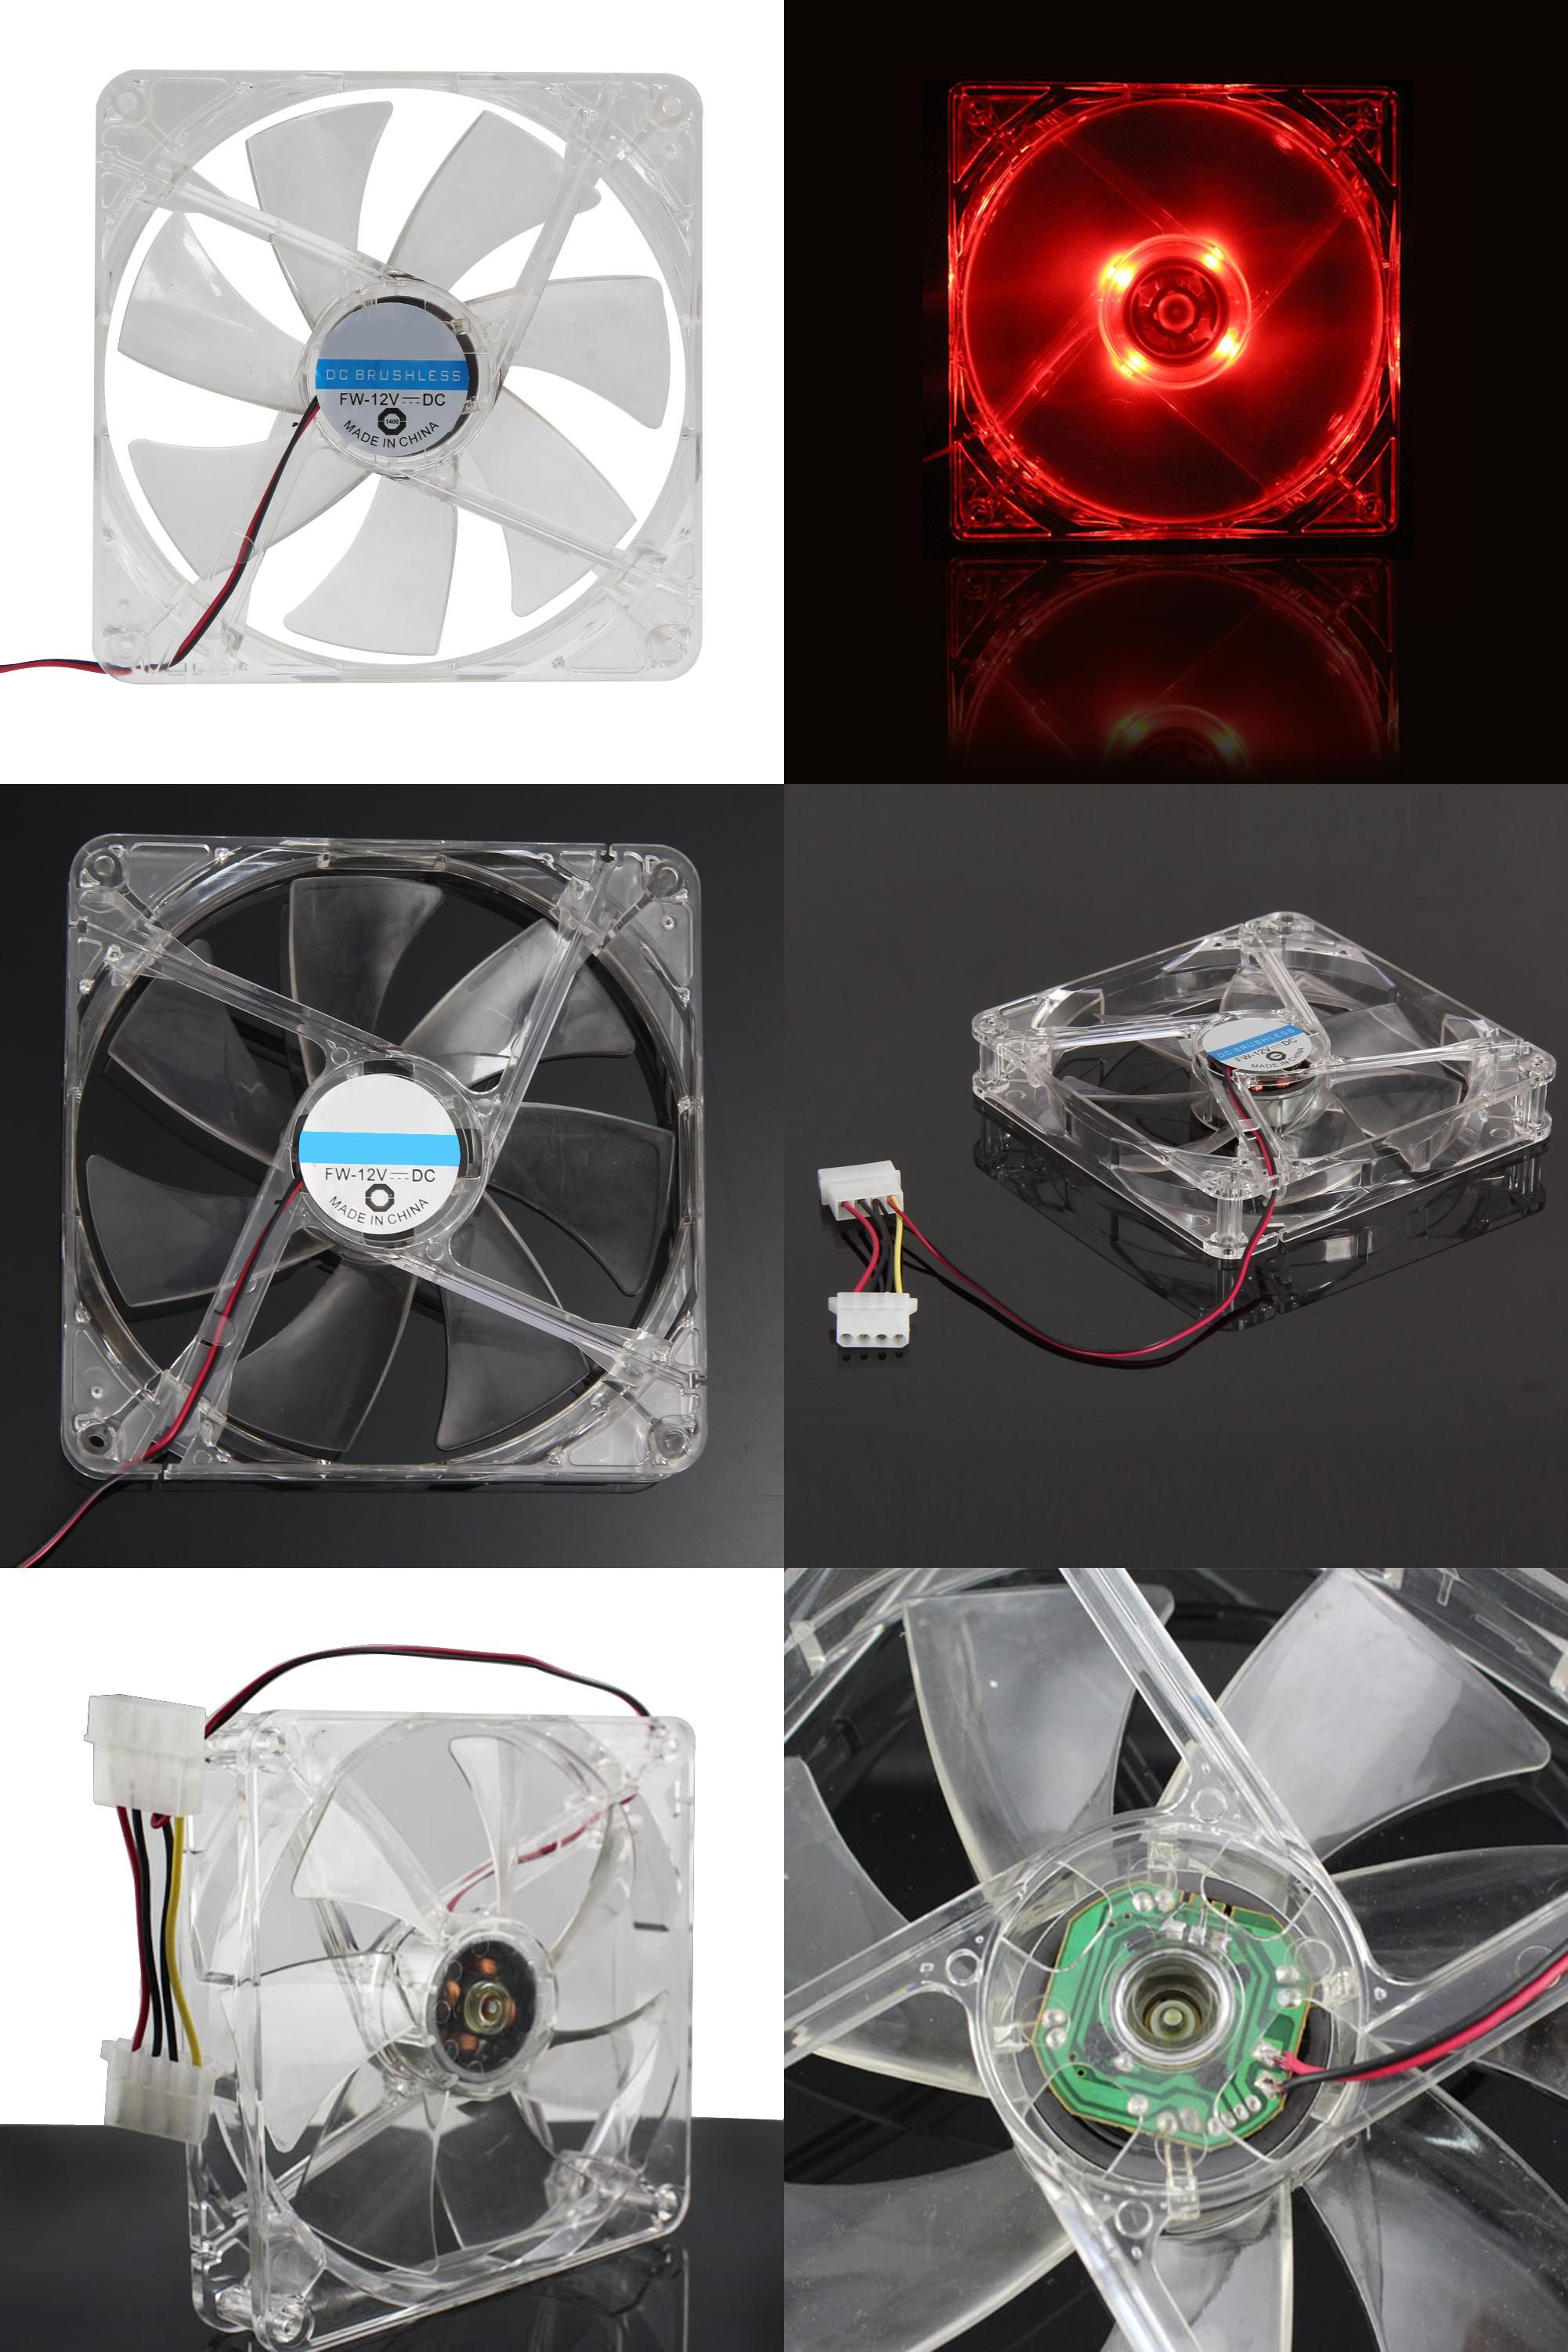 Visit To Buy 2017 New 14cm Pc Computer Clear Case Red Led Light 7 Blade Cpu Cooling Fan 12v 4pin Computer Pc Case Cooler C Red Led Lights Red Led Clear Cases